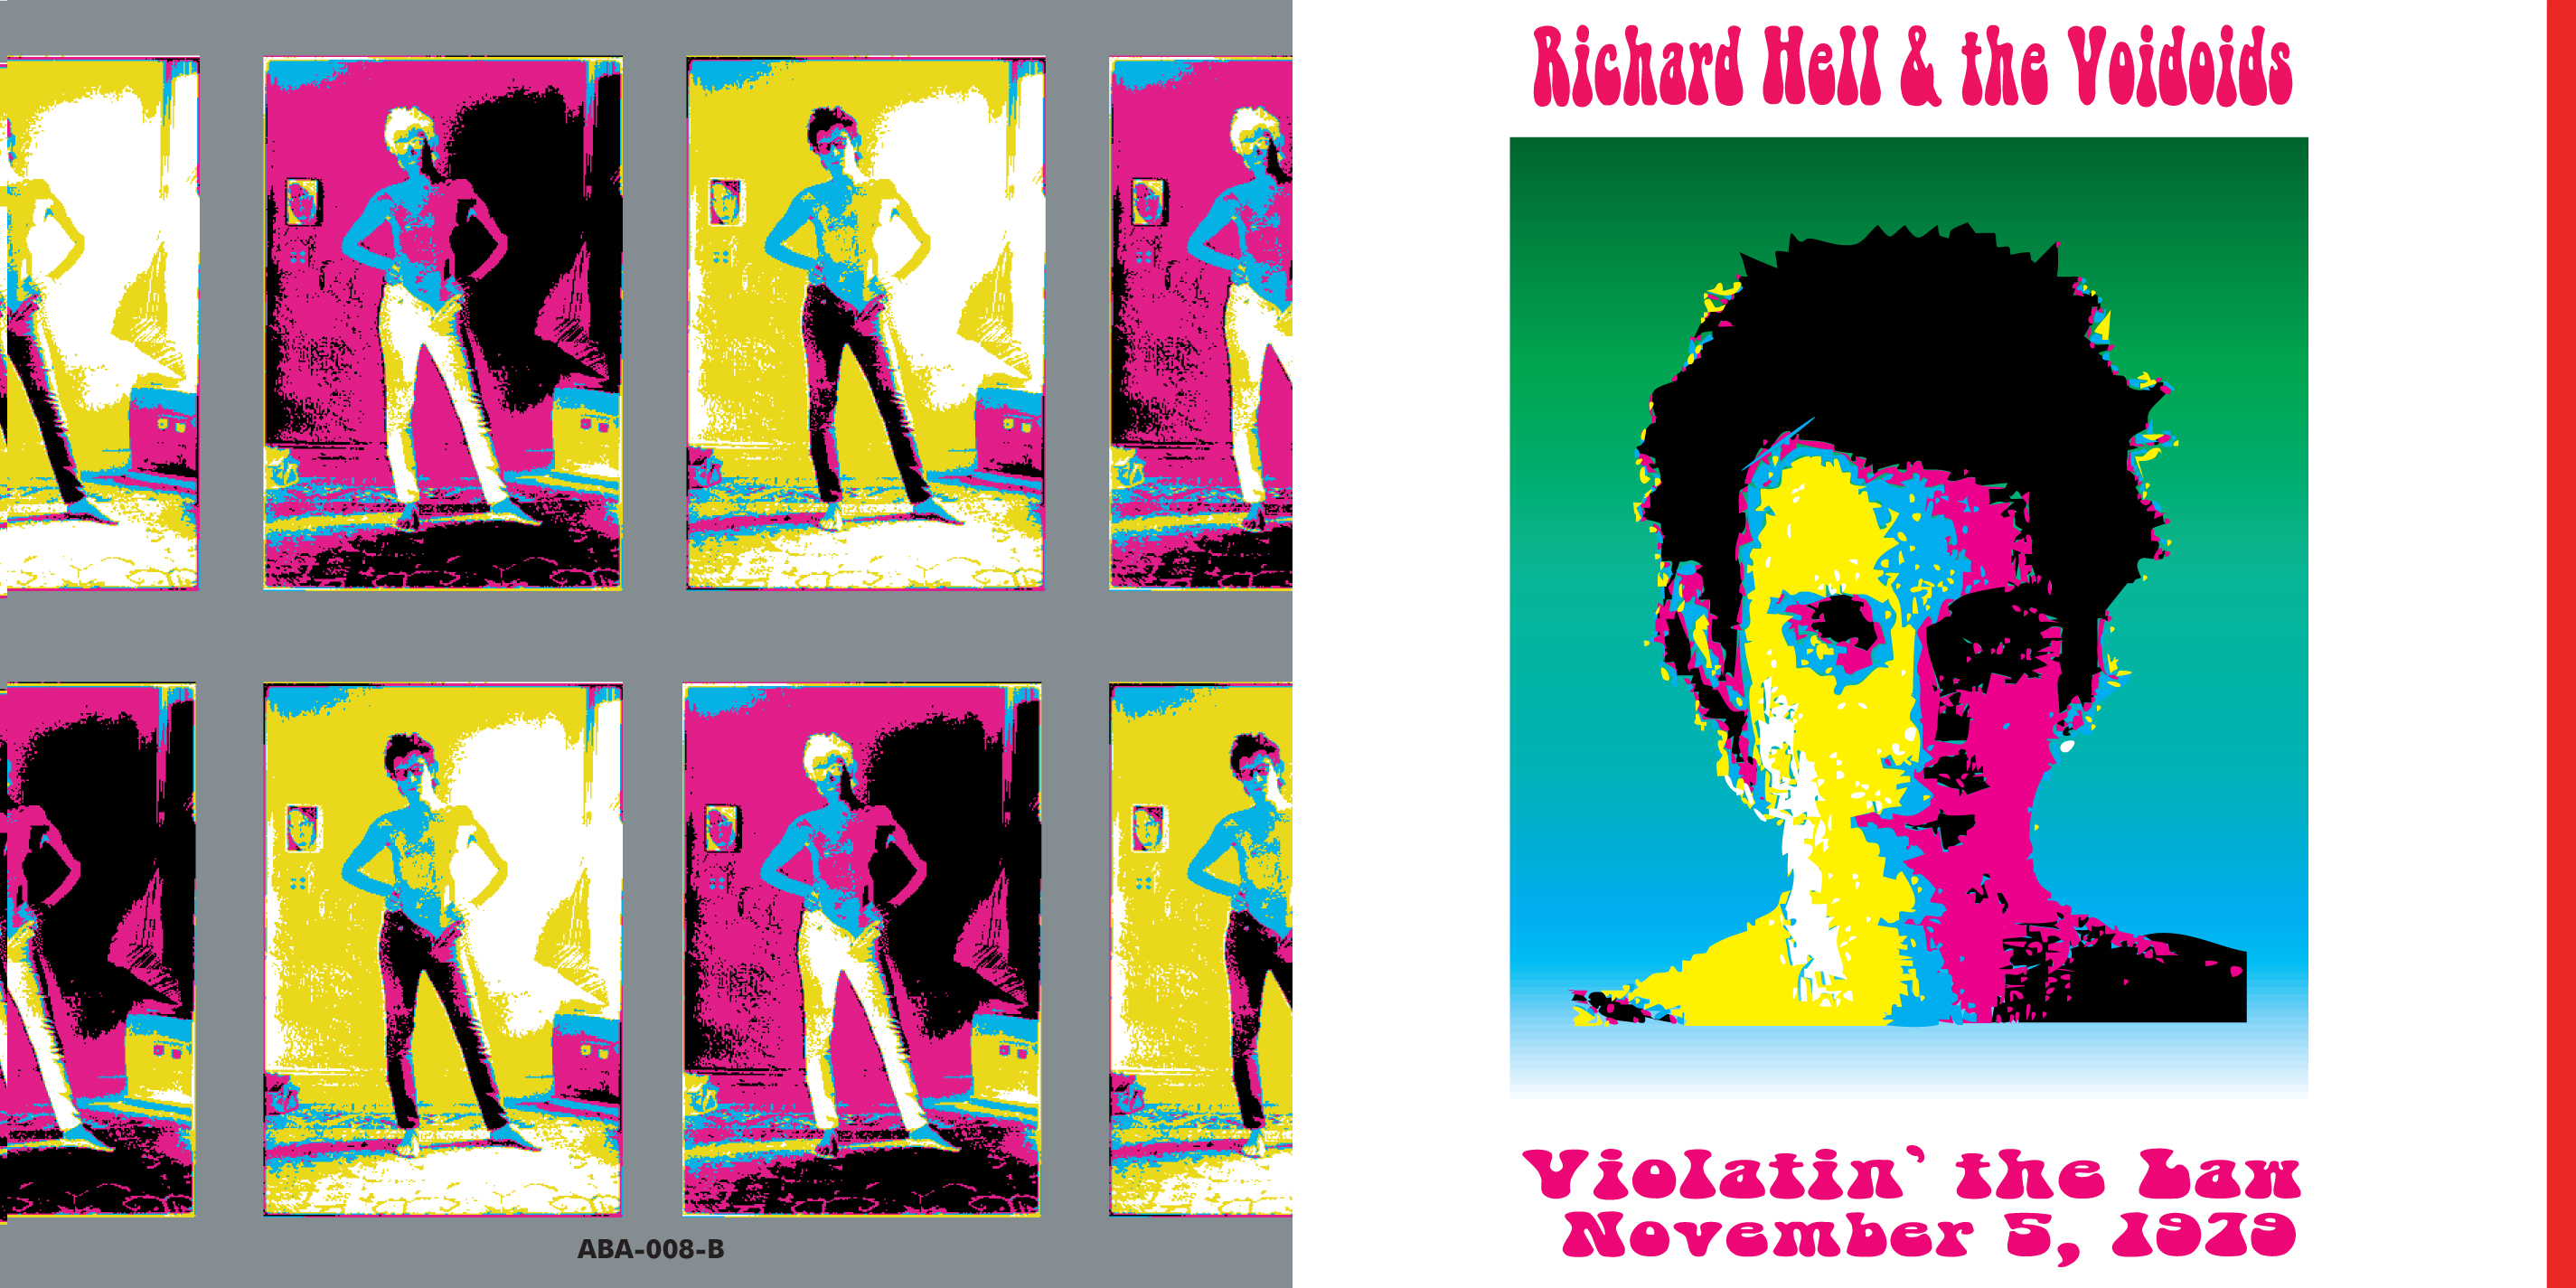 - RichardHellAndTheVoidoids1979-11-05OxfordAleHouseNewHavenCT (1)